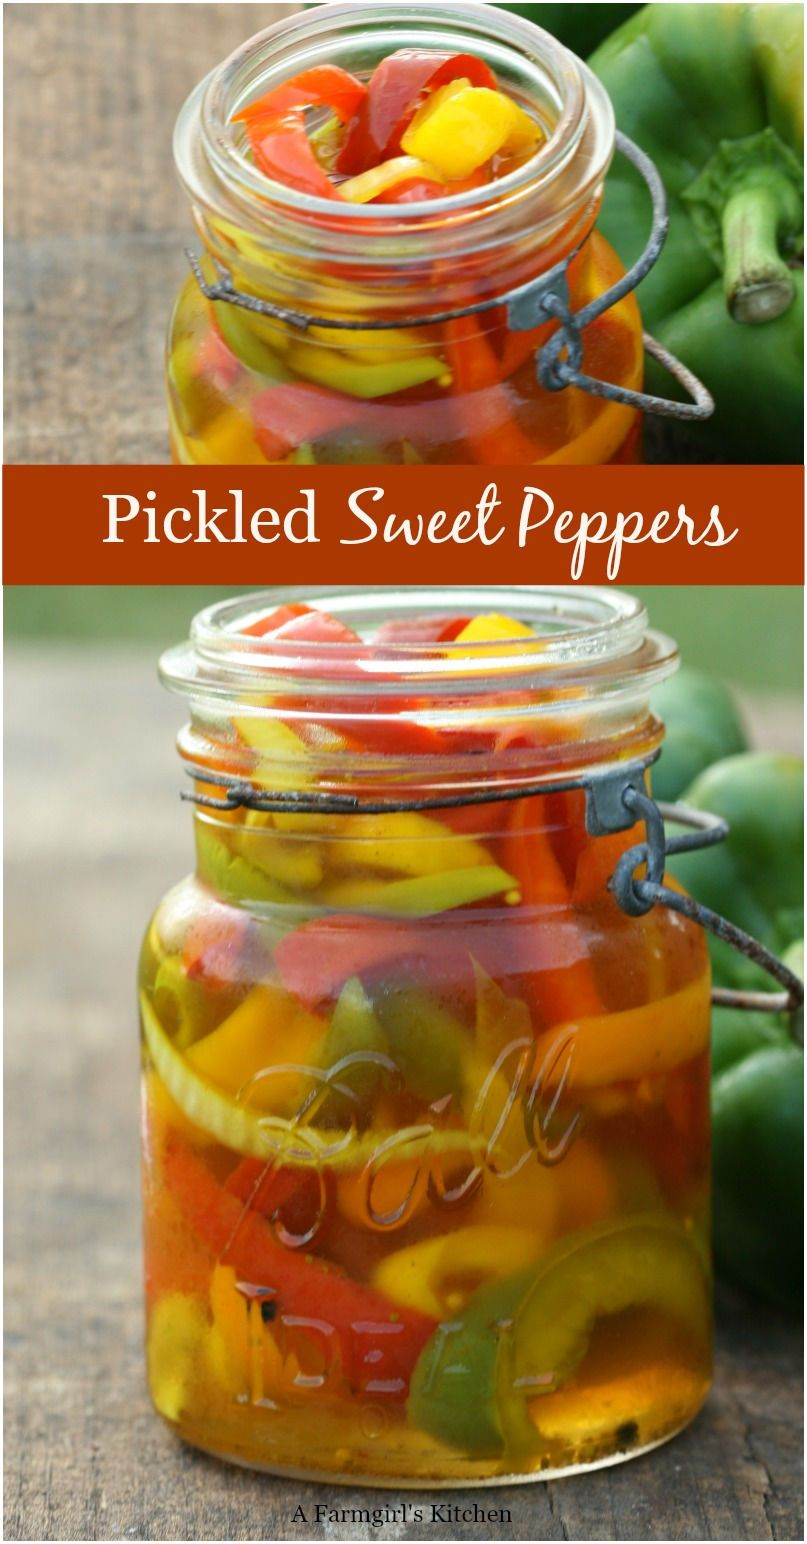 Pickled Sweet Peppers In 2020 Sweet Pepper Recipes Stuffed Sweet Peppers Stuffed Peppers